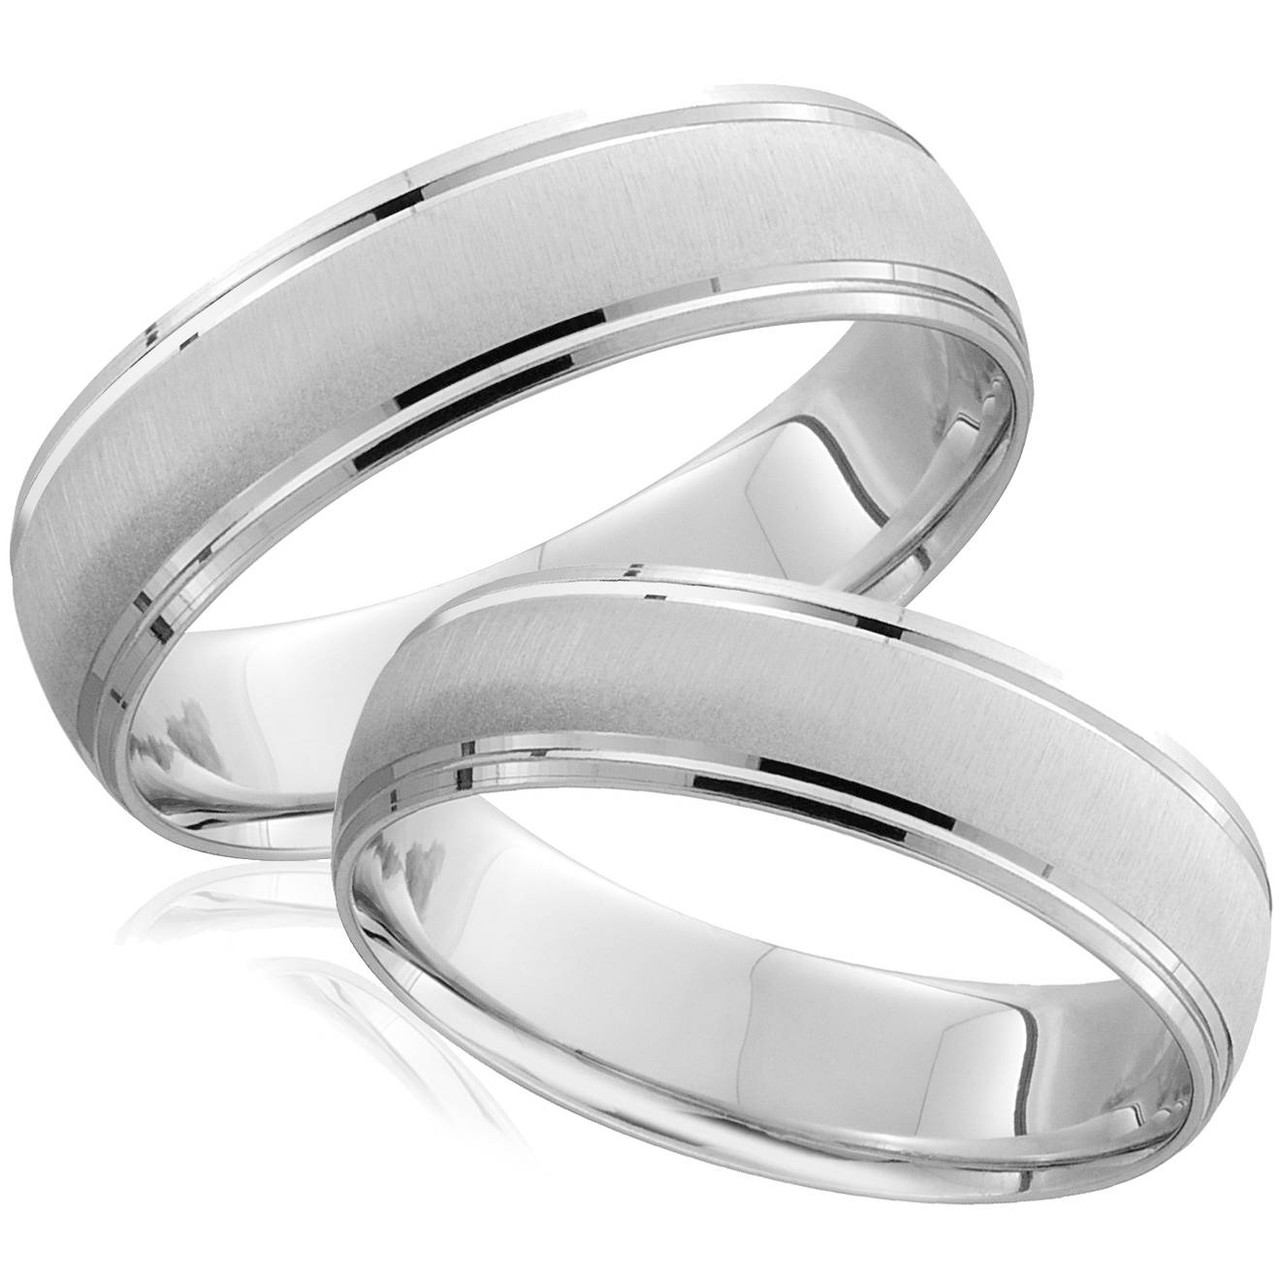 fc2045bf93ed0c White Gold Brushed Wedding Band Set Matching Mens Womens Rings 14k 6/5MM.  WB1399. https://d3d71ba2asa5oz.cloudfront.net/53000589/images/wb1399large.